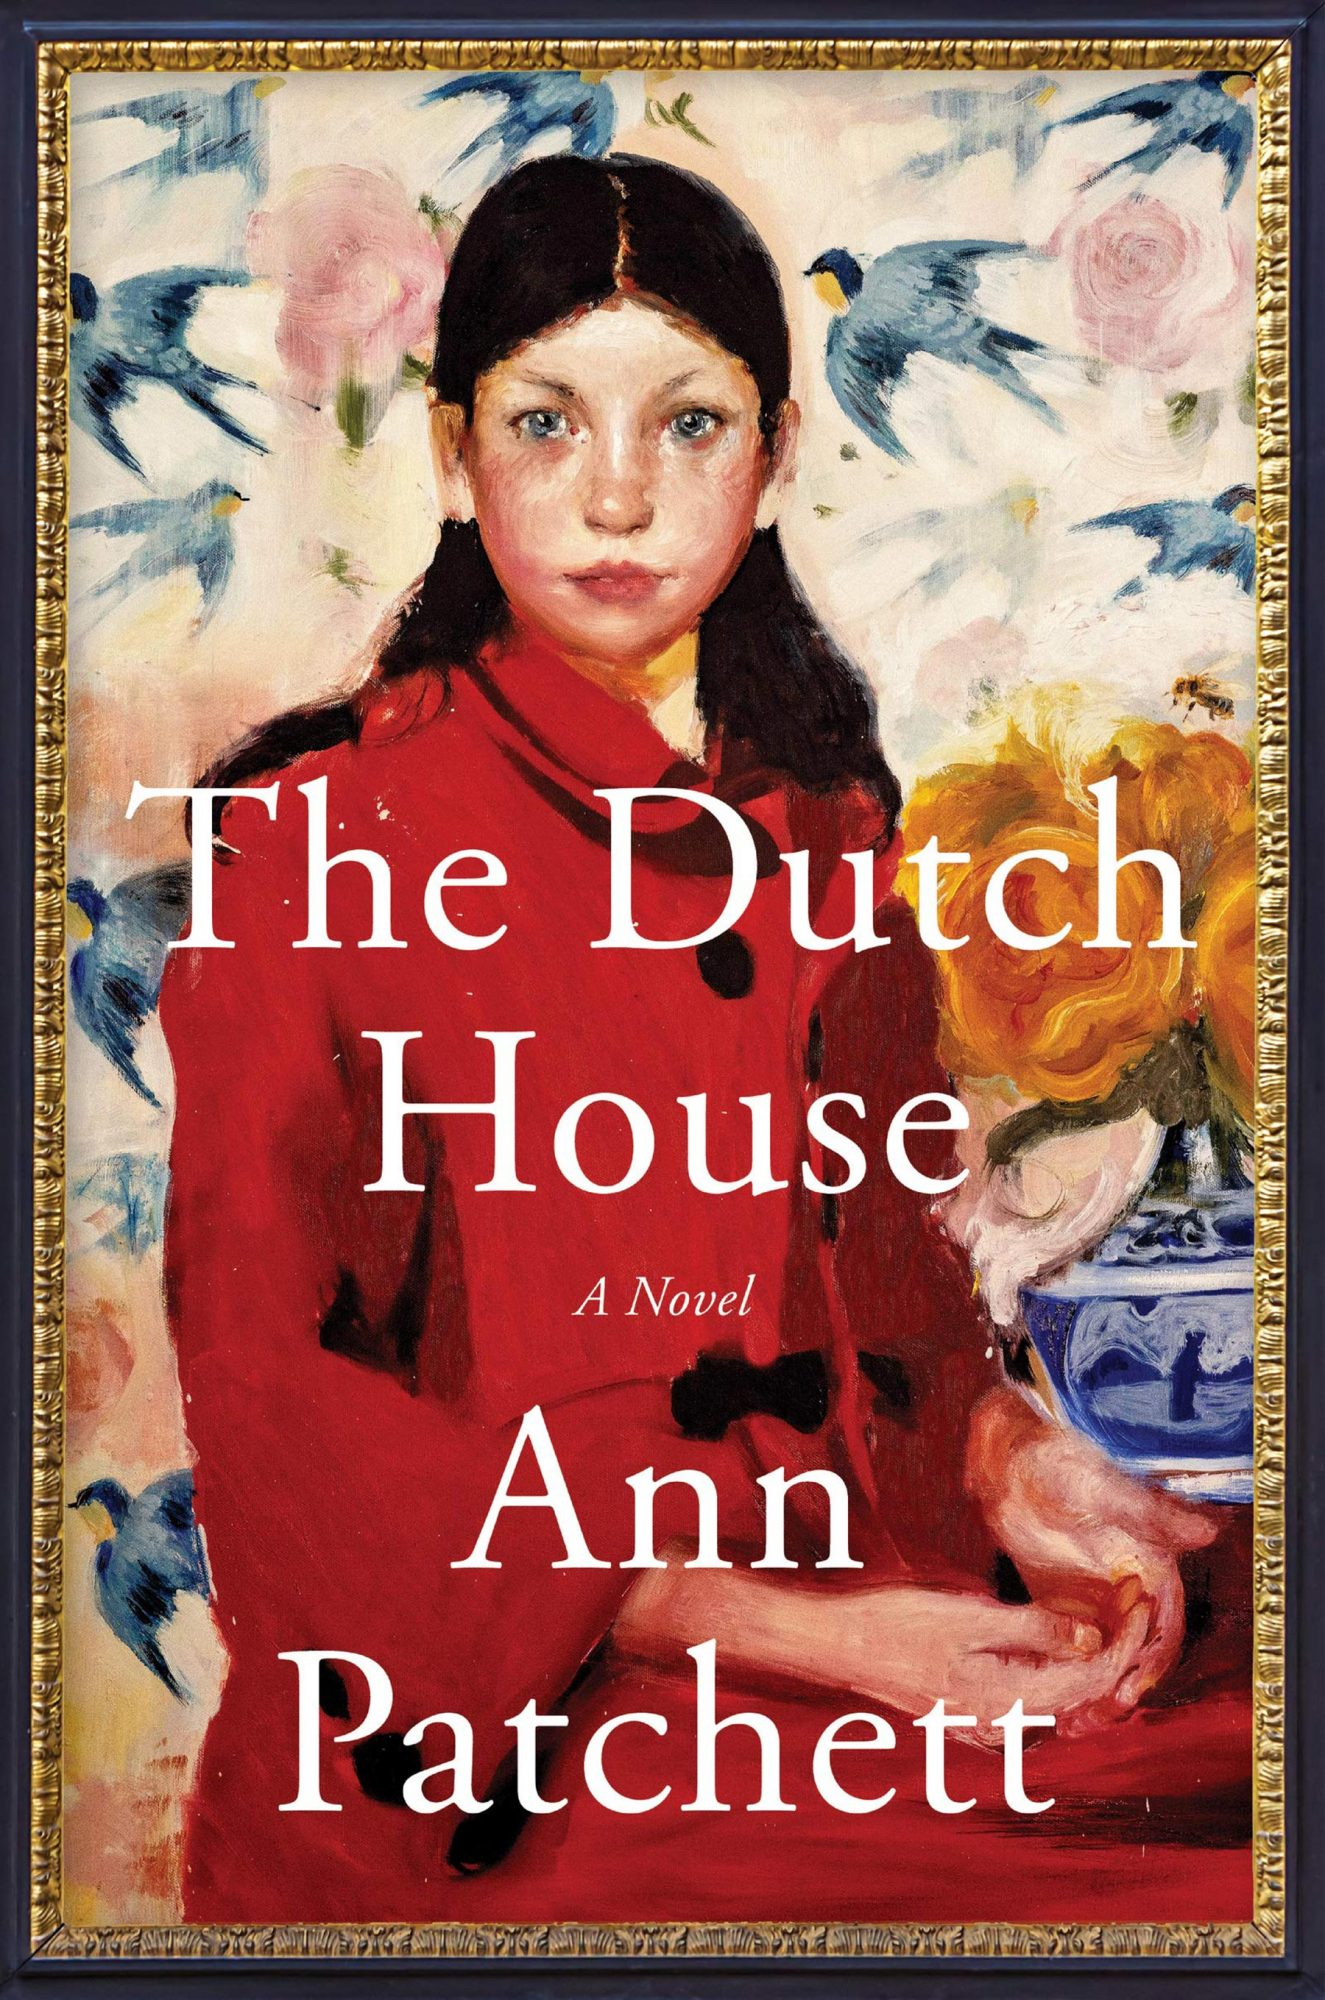 The Dutch House by Ann PatchettPublisher: Harper